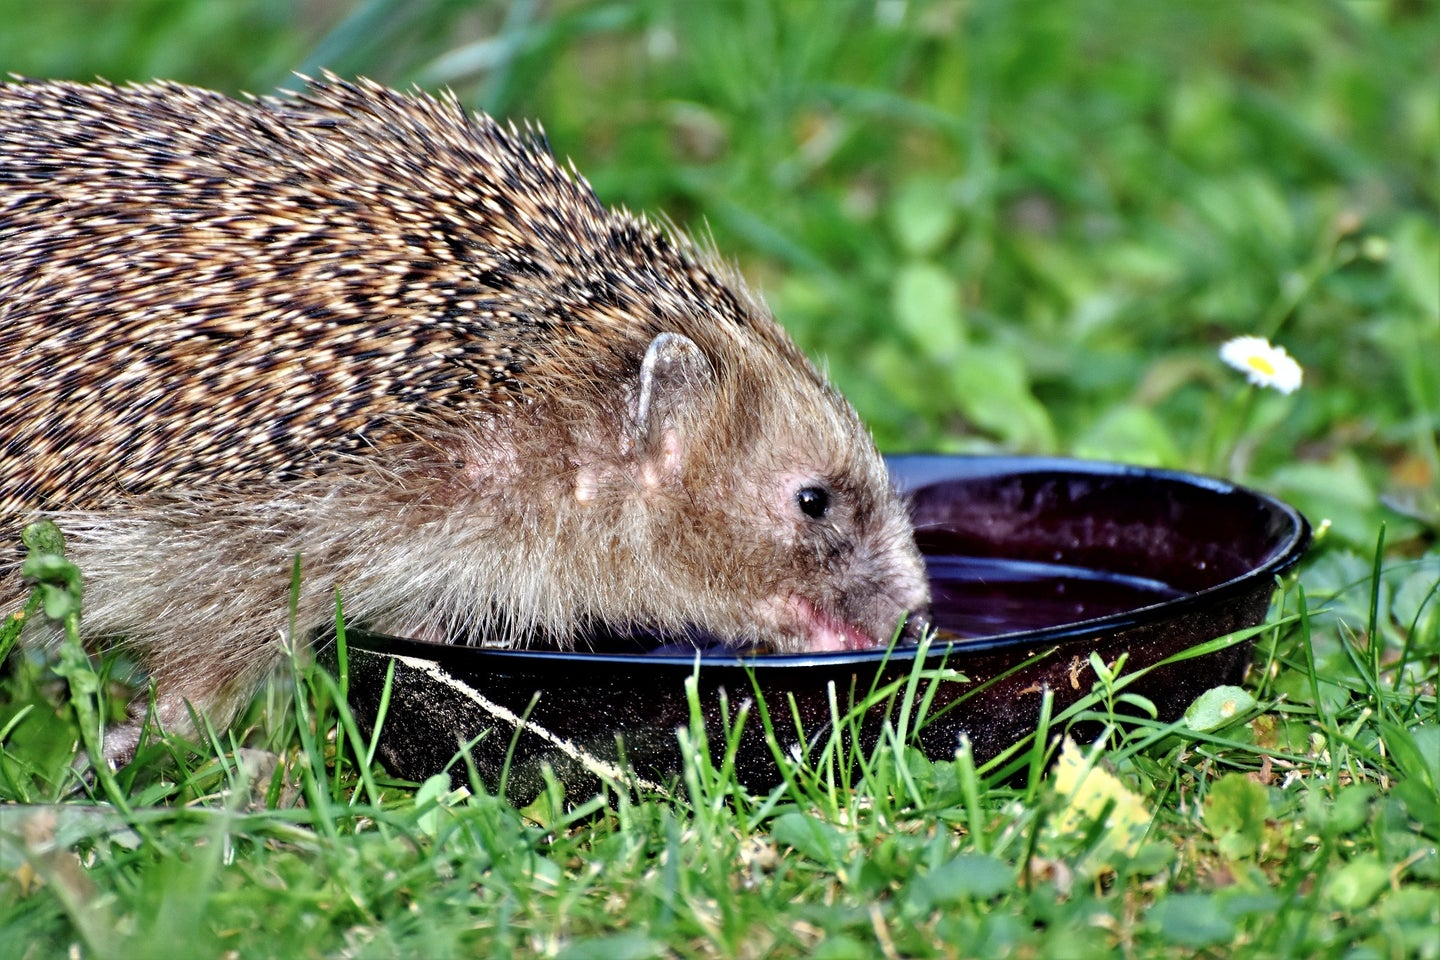 A hedgehog drinking water out of a bowl on some grass.